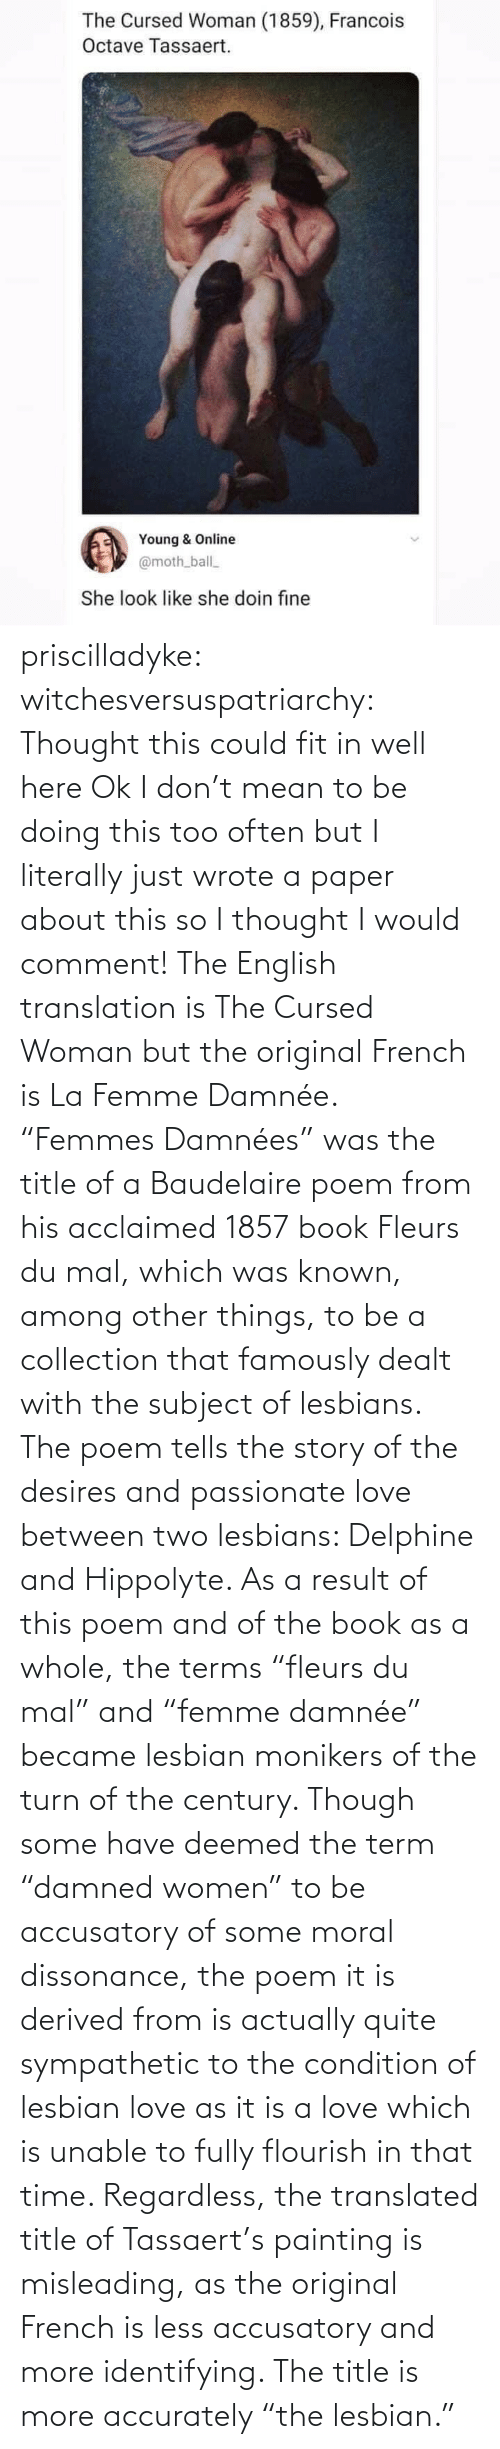 "fit: priscilladyke:  witchesversuspatriarchy: Thought this could fit in well here   Ok I don't mean to be doing this too often but I literally just wrote a paper about this so I thought I would comment! The English translation is The Cursed Woman but the original French is La Femme Damnée. ""Femmes Damnées"" was the title of a Baudelaire poem from his acclaimed 1857 book Fleurs du mal, which was known, among other things, to be a collection that famously dealt with the subject of lesbians. The poem tells the story of the desires and passionate love between two lesbians:  Delphine and Hippolyte. As a result of this poem and of the book as a whole, the terms ""fleurs du mal"" and ""femme damnée"" became lesbian monikers of the turn of the century. Though some have deemed the term ""damned women"" to be accusatory of some moral dissonance, the poem it is derived from is actually quite sympathetic to the condition of lesbian love as it is a love which is unable to fully flourish in that time. Regardless, the translated title of Tassaert's painting is misleading, as the original French is less accusatory and more identifying. The title is more accurately ""the lesbian."""